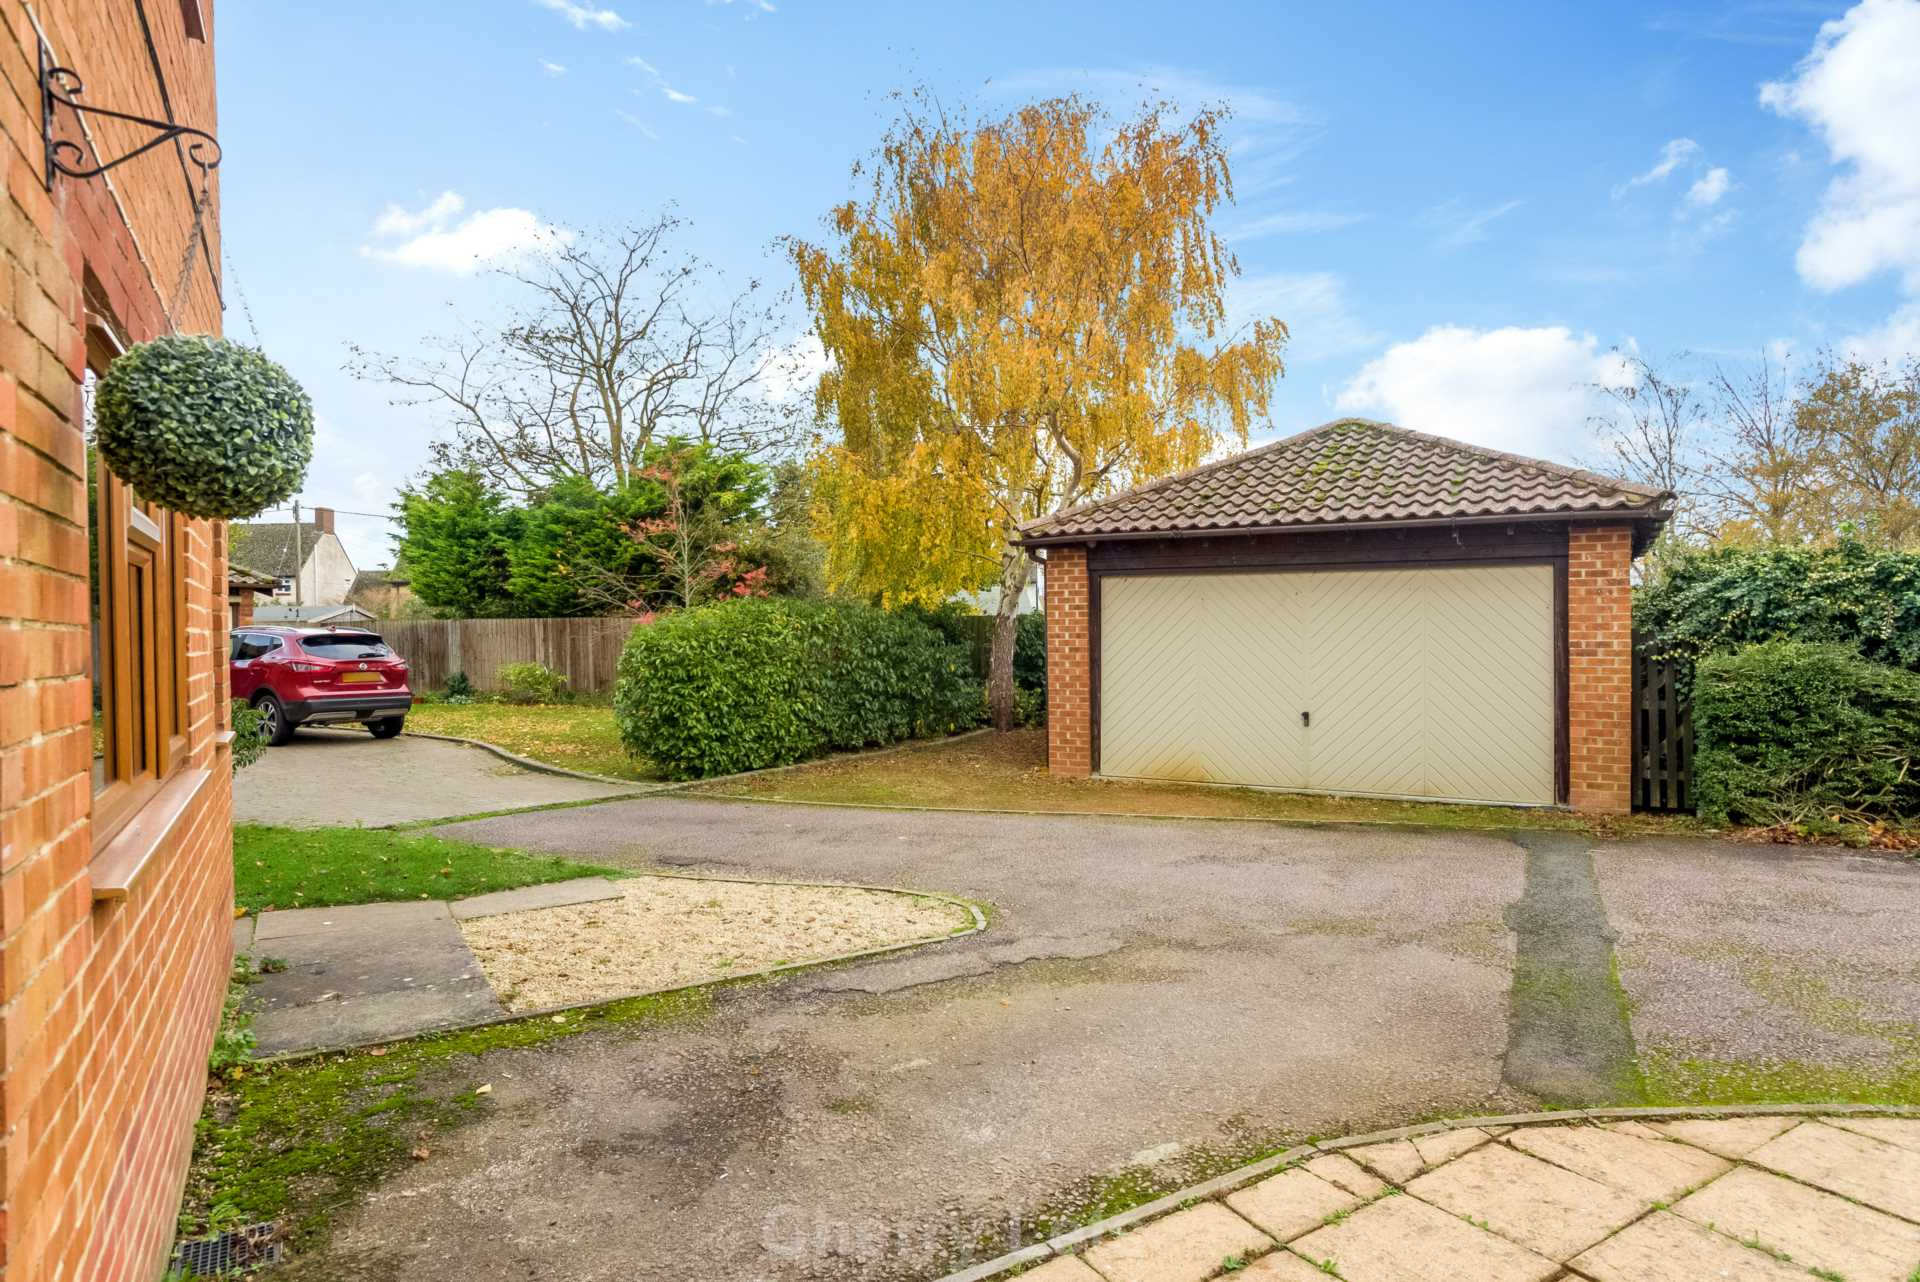 3 bed detached house to rent in Mill Close, Deddington, OX15  - Property Image 15